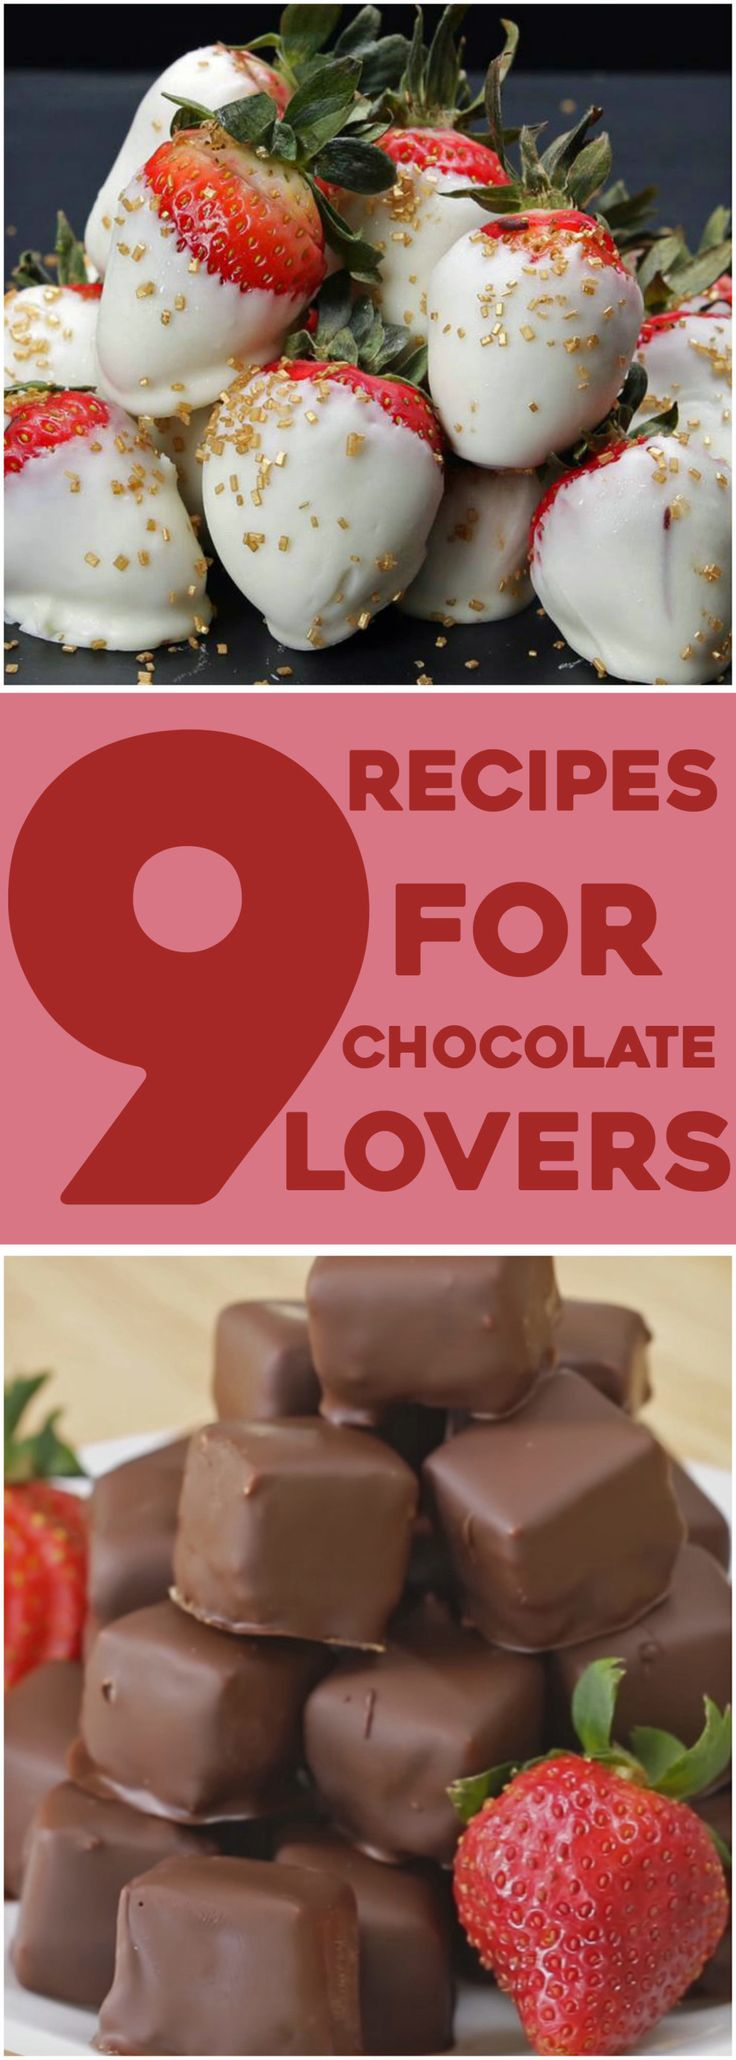 Who doesn't love chocolate?!